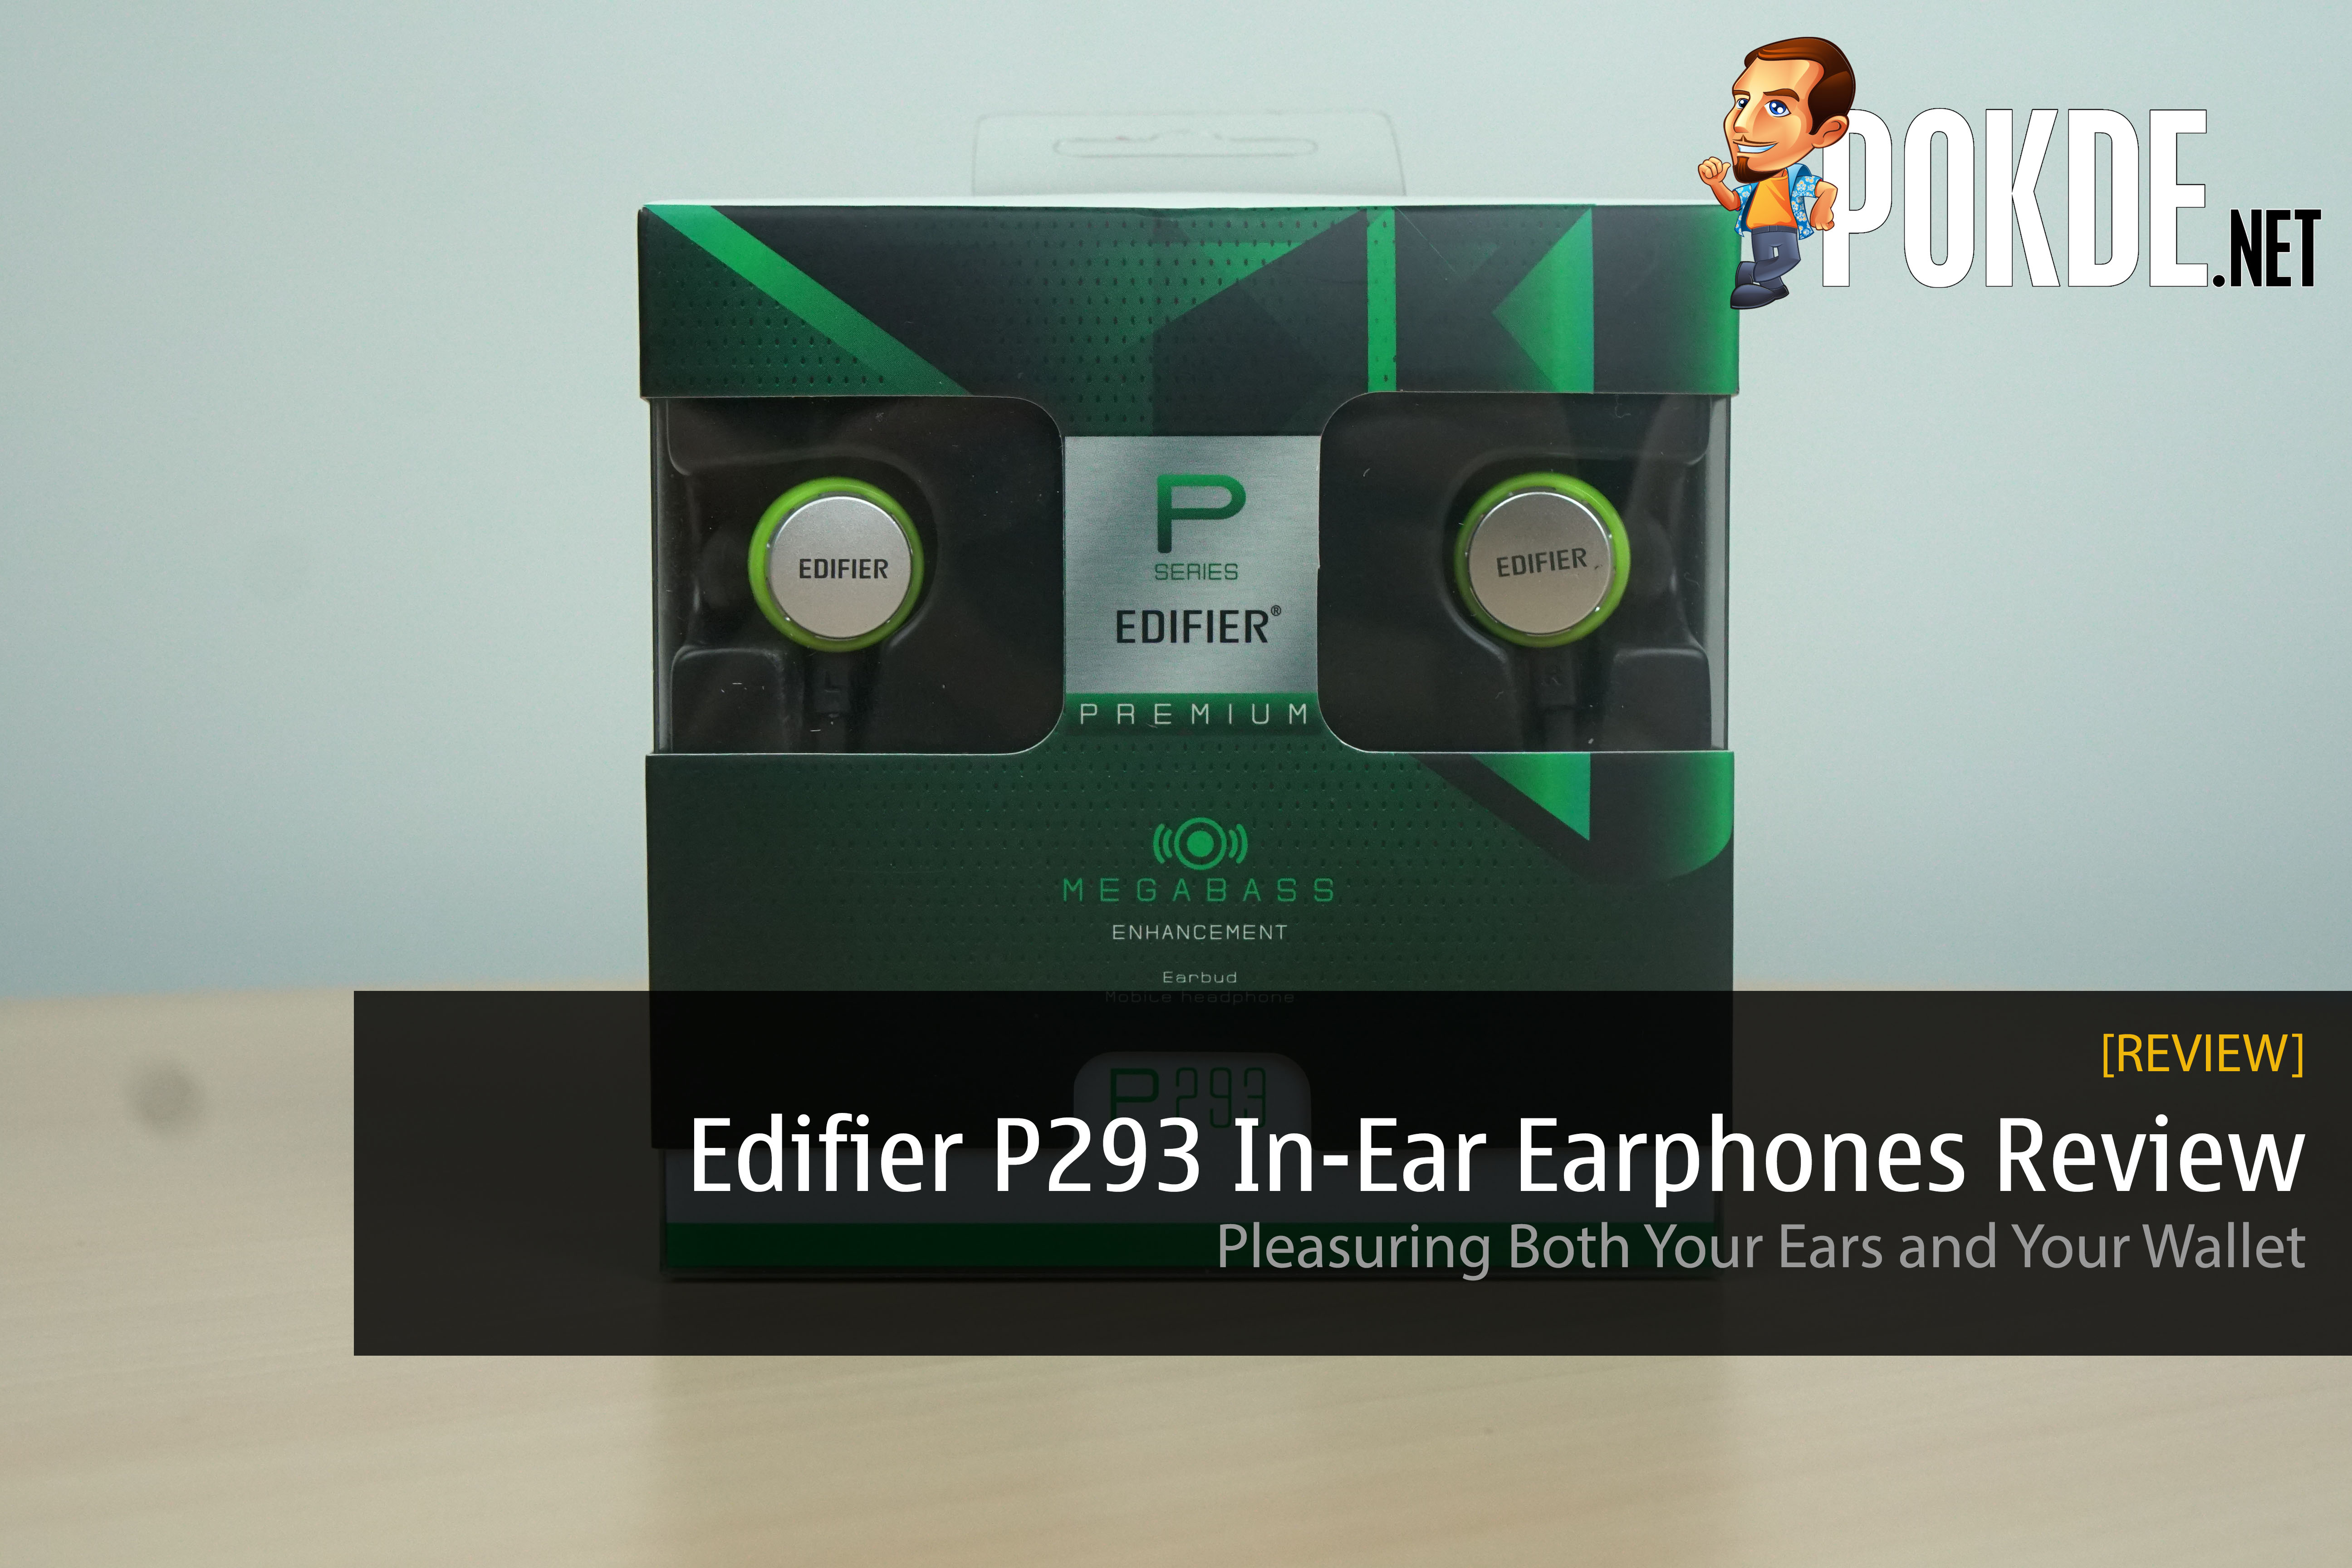 Edifier P293 in-ear Earphones Review - Pleasuring Both Your Ears and Your Wallet 24